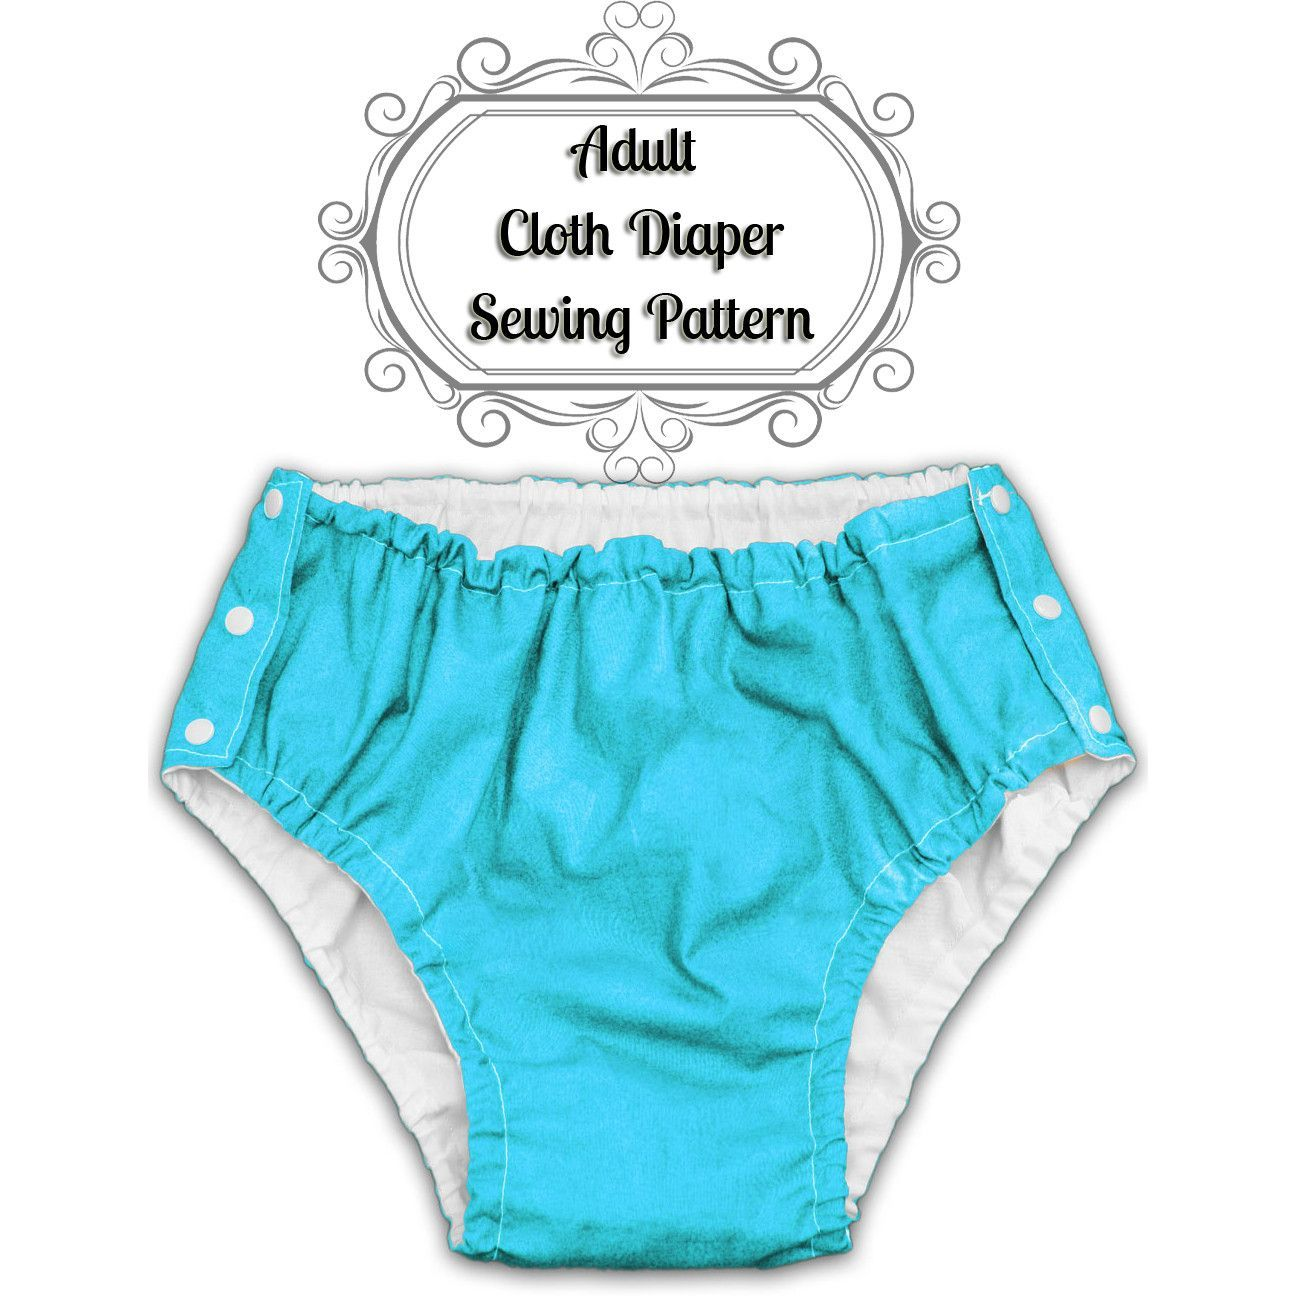 adult-incontinence-cloth-diaper-sewing-pattern